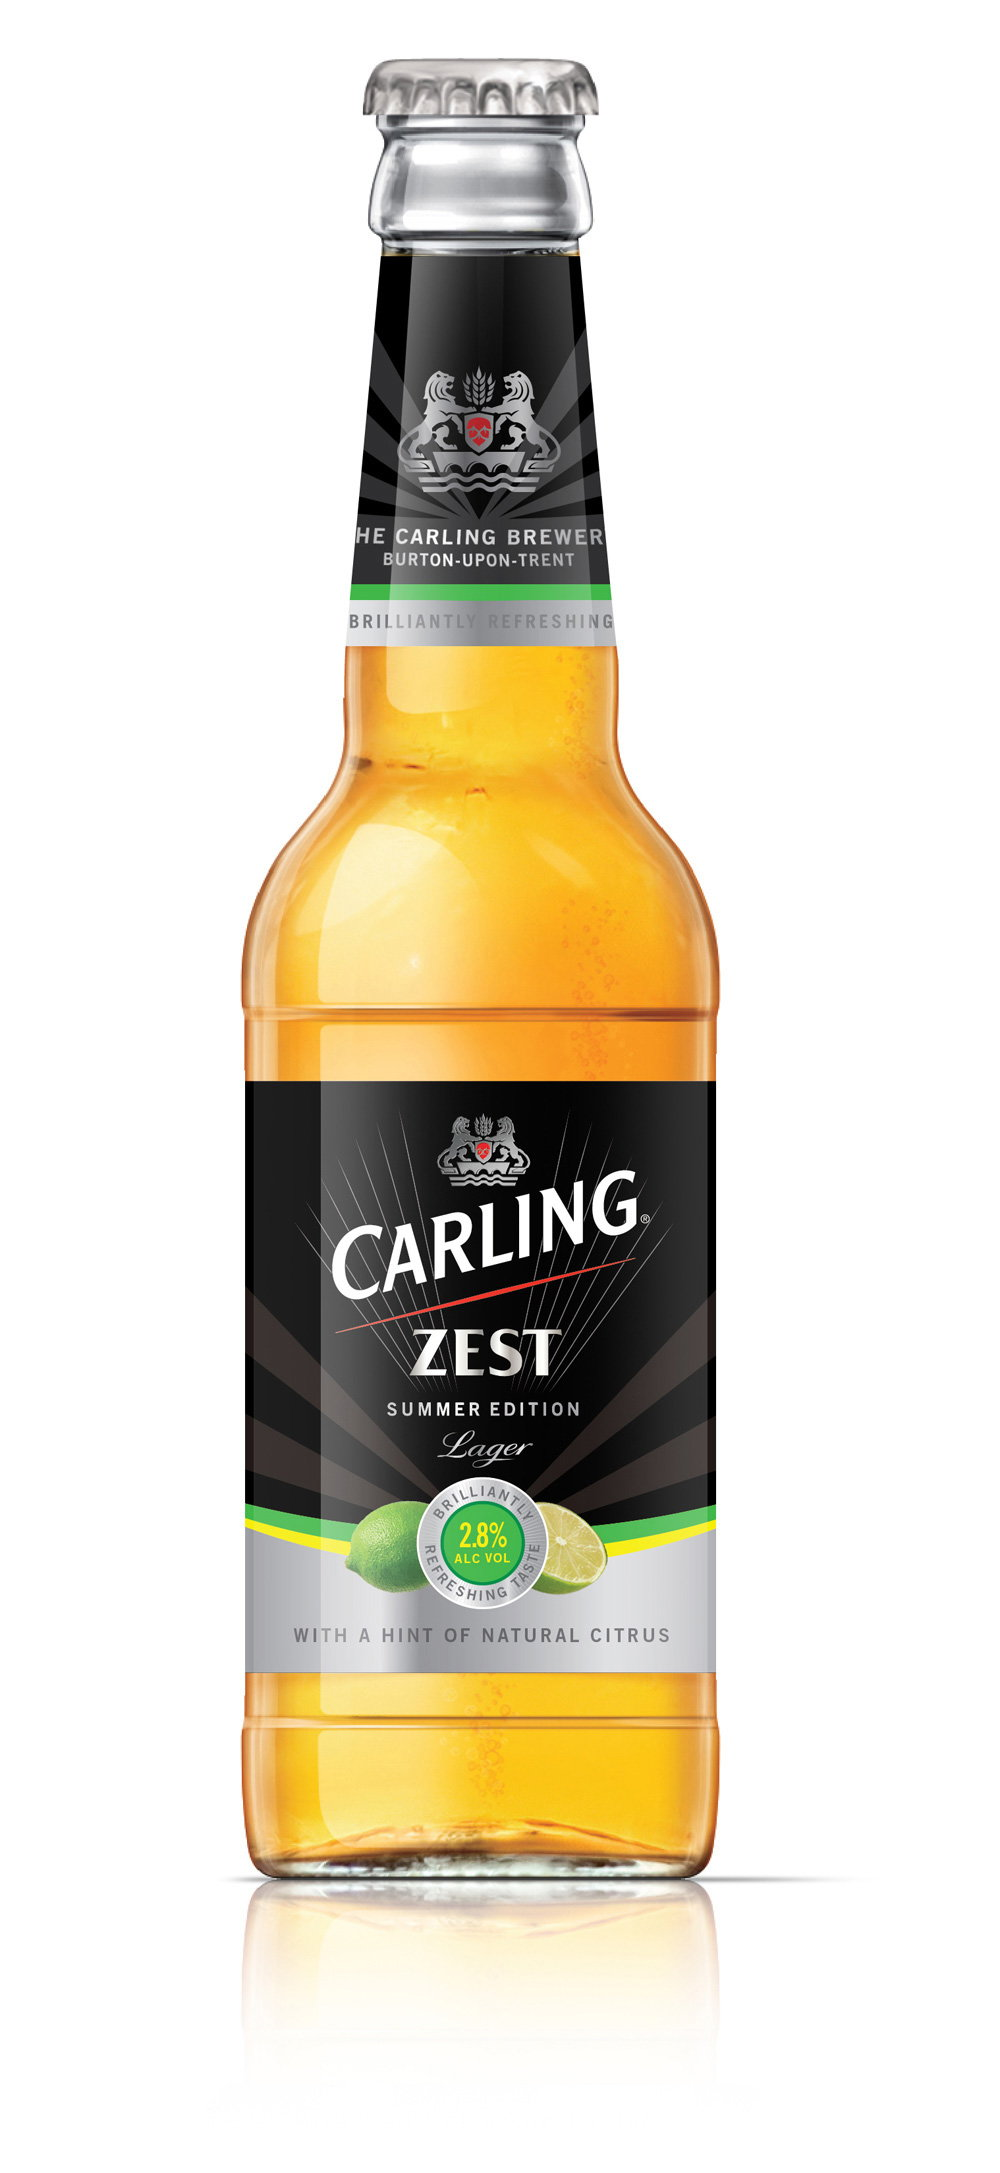 Limited Edition Carling Zest